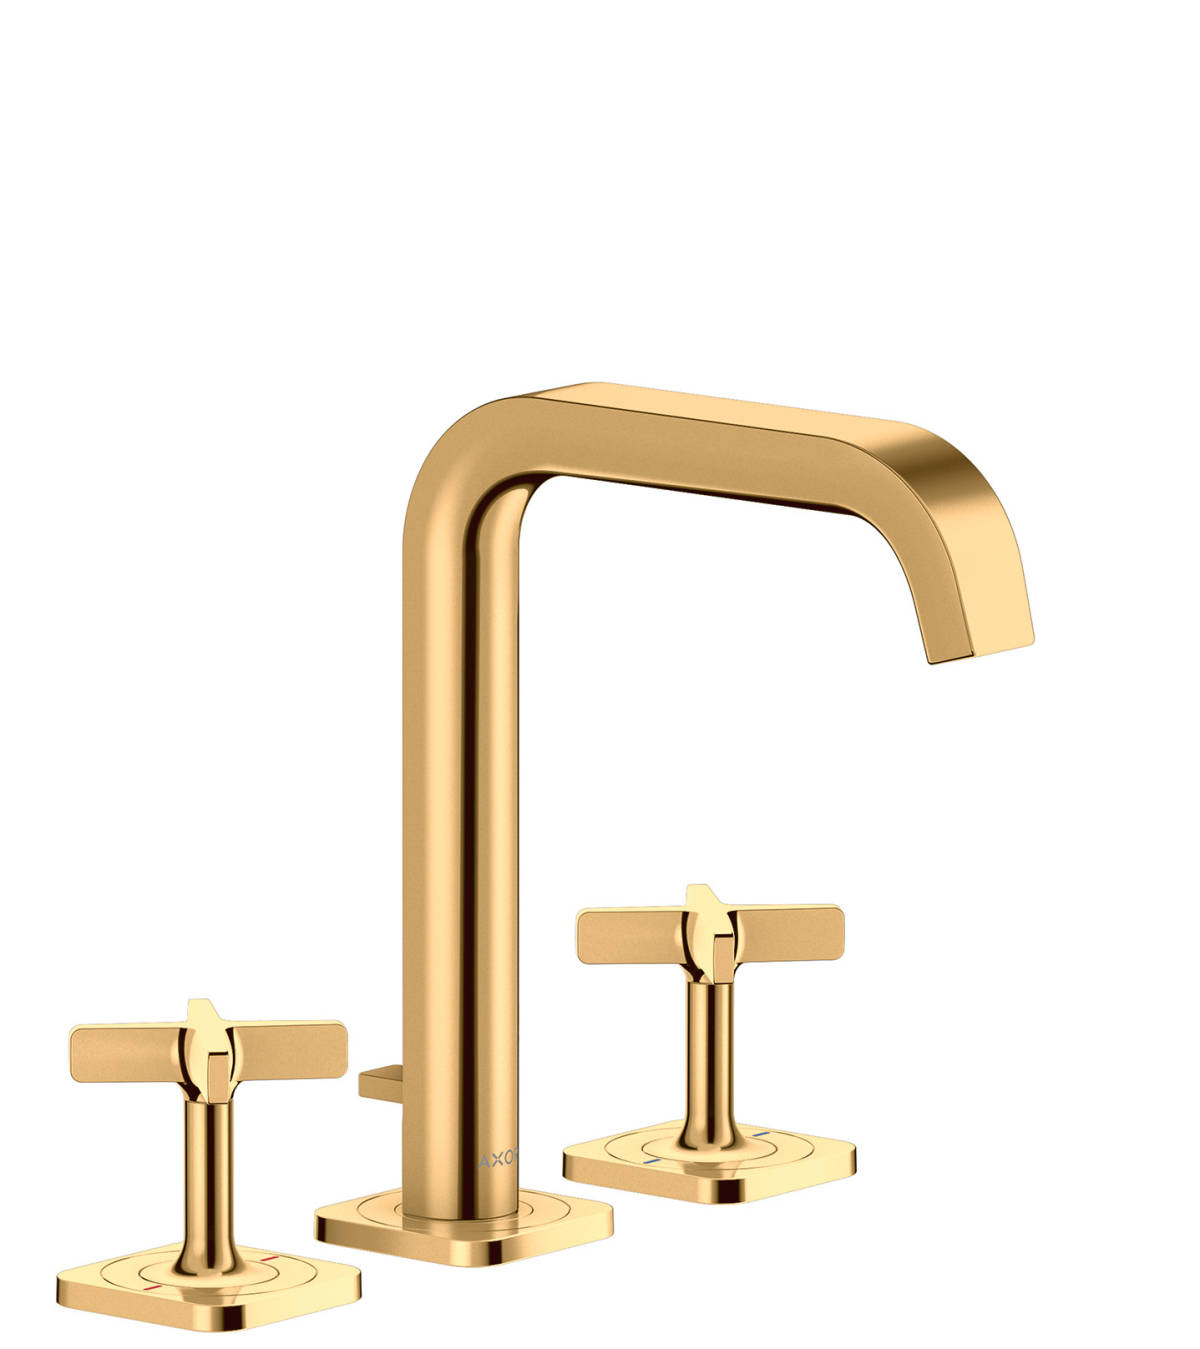 3-hole basin mixer 170 with escutcheons and pop-up waste set, Polished Brass, 36108930